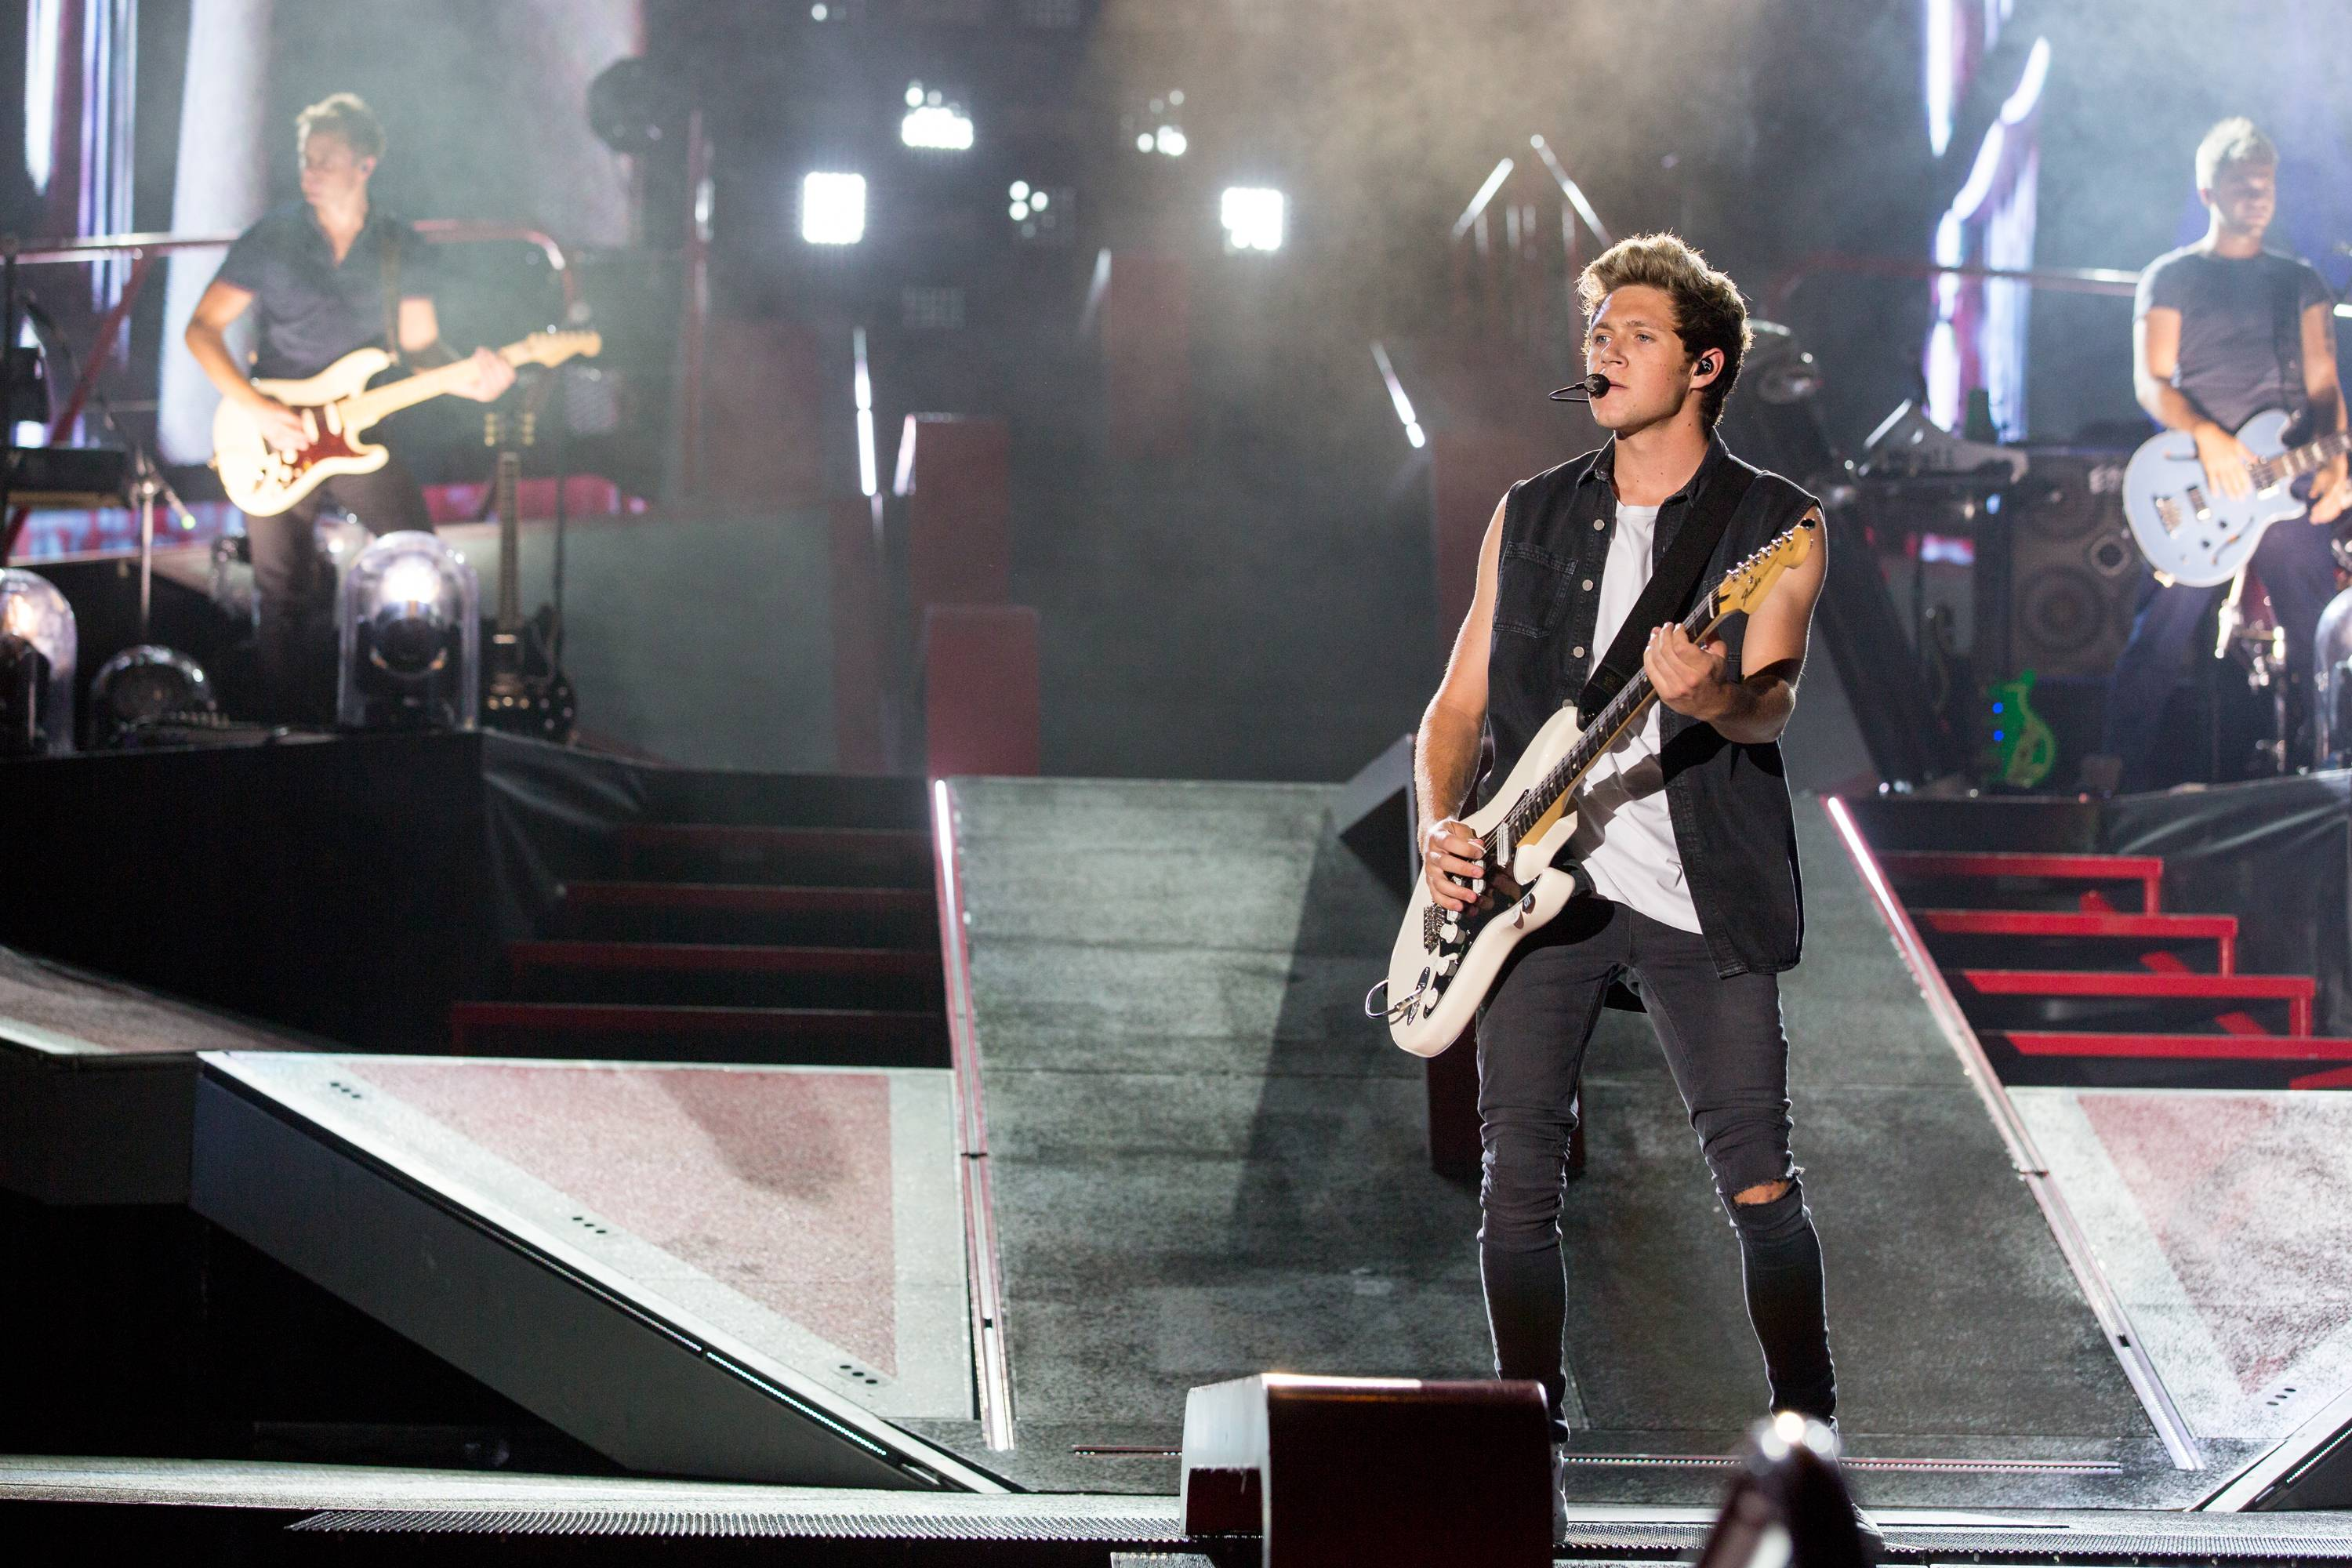 Niall Horan and the rest of One Direction play Soldier Field in Chicago for two performances on Friday and Saturday, Aug. 29 and 30.